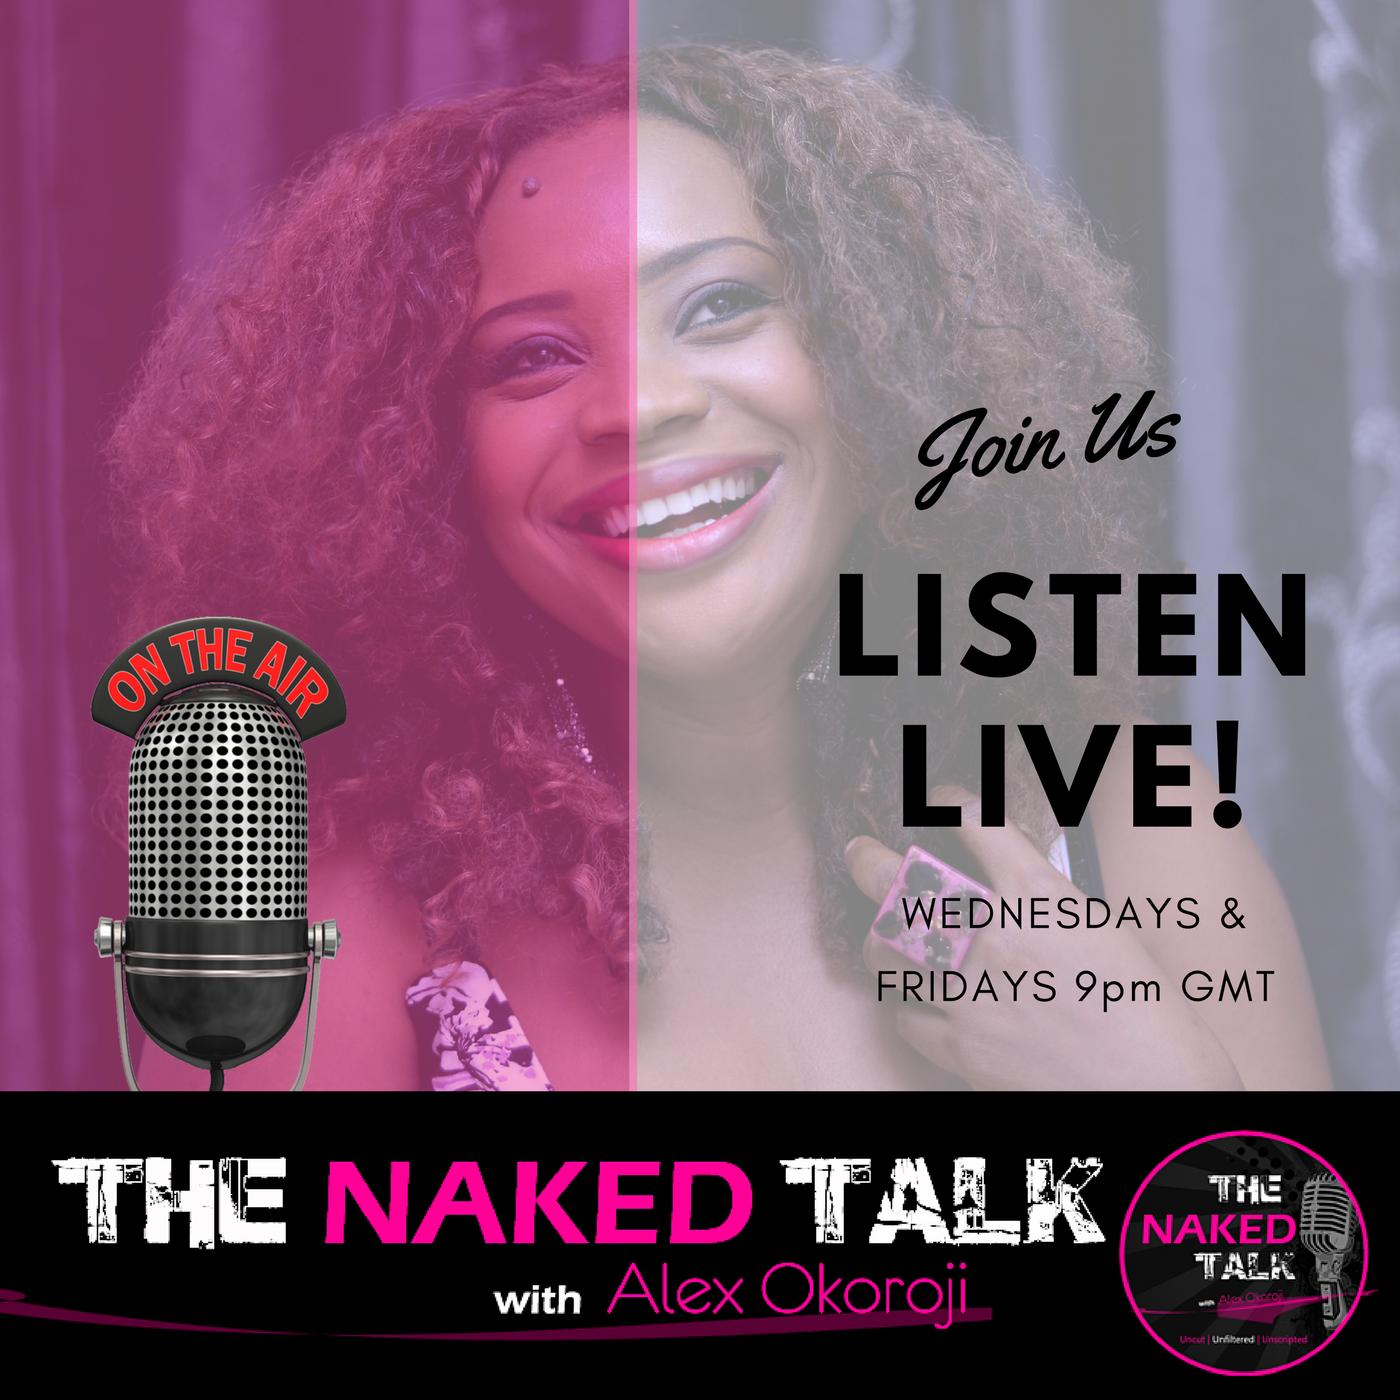 THE NAKED TALK with Alex Okoroji